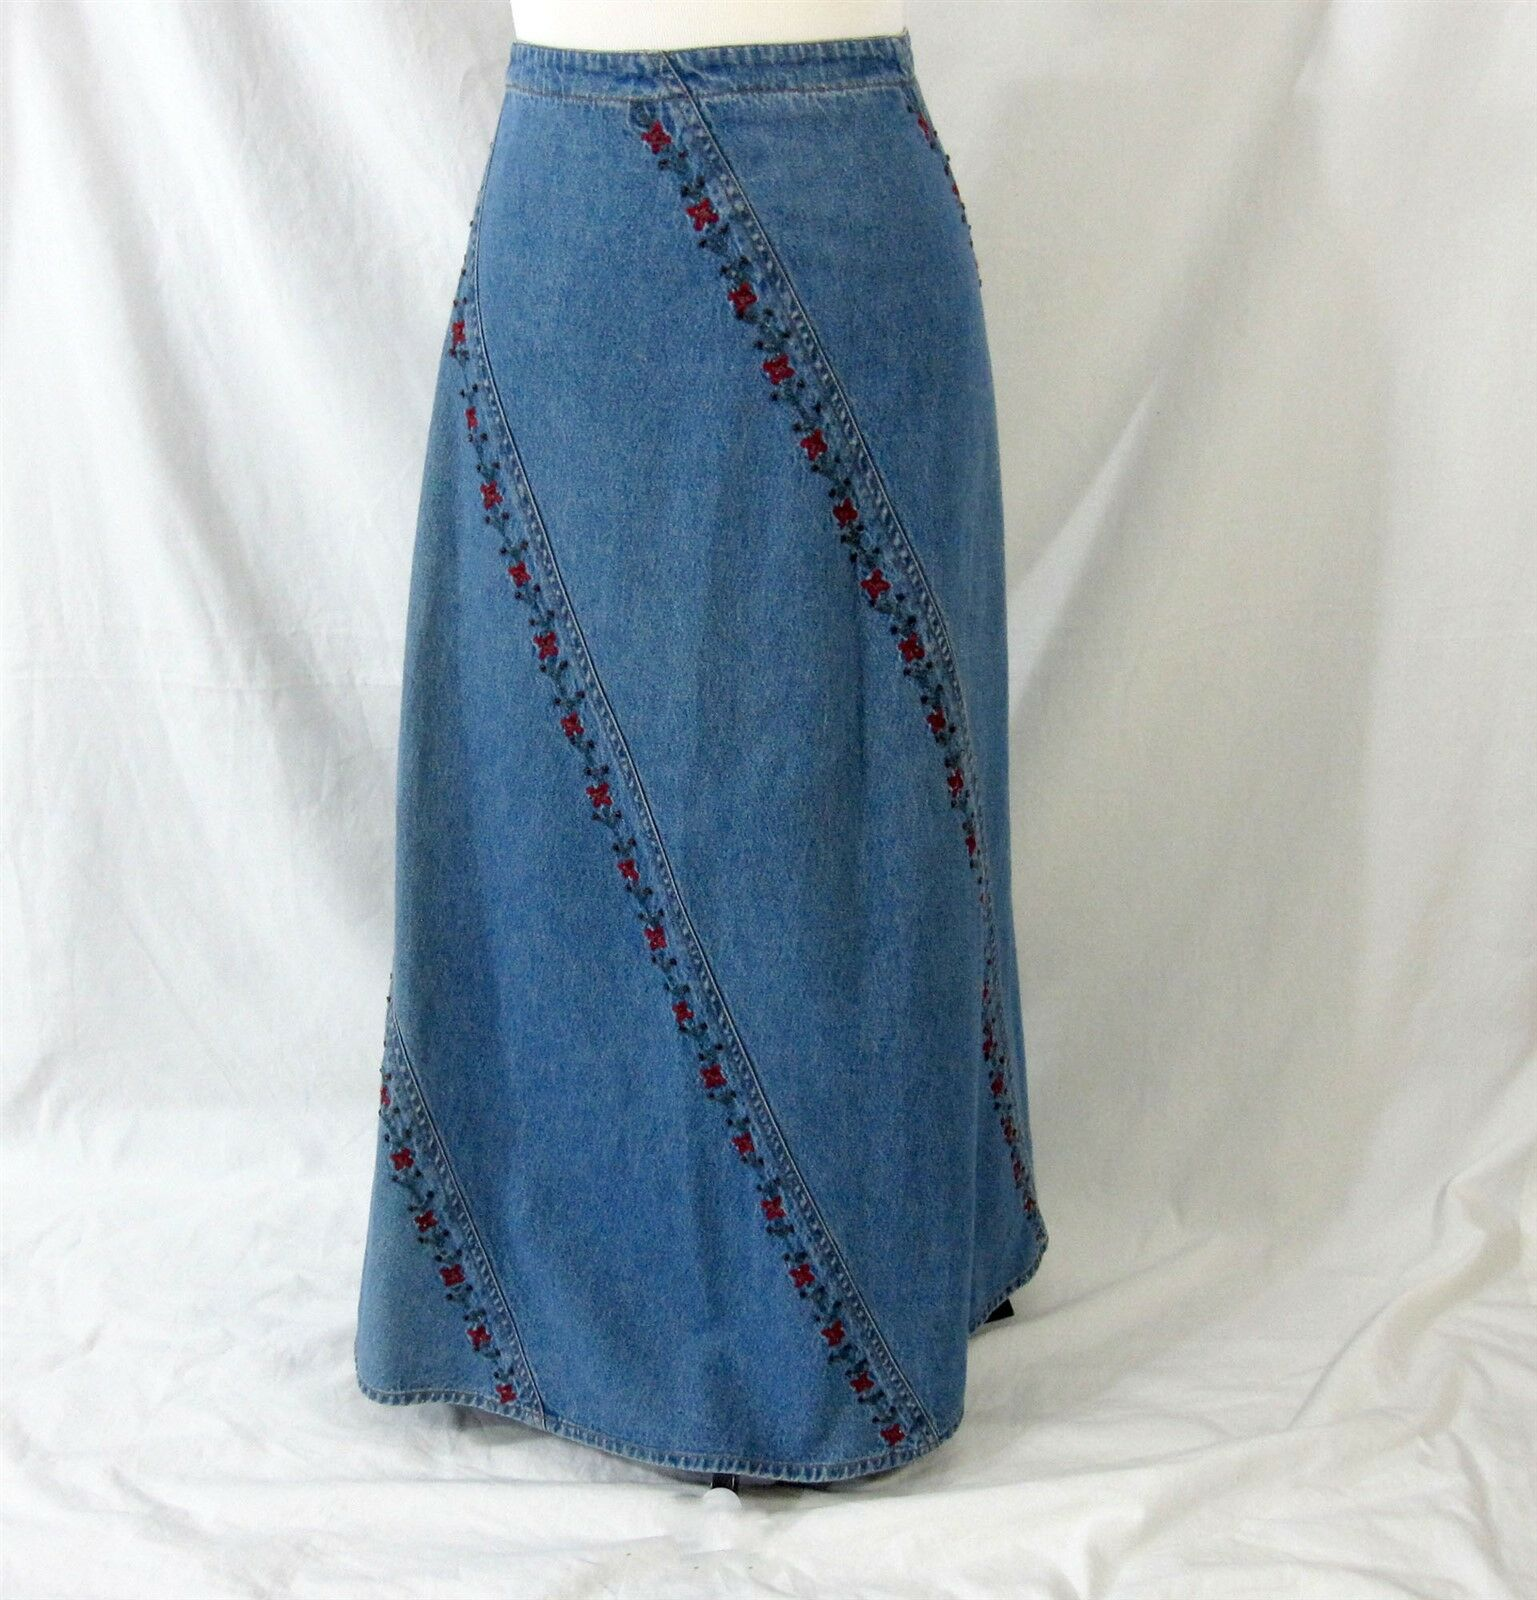 Studio West Jeans Skirt Size 10 bluee Denim Embroidered Flowers Modest Long